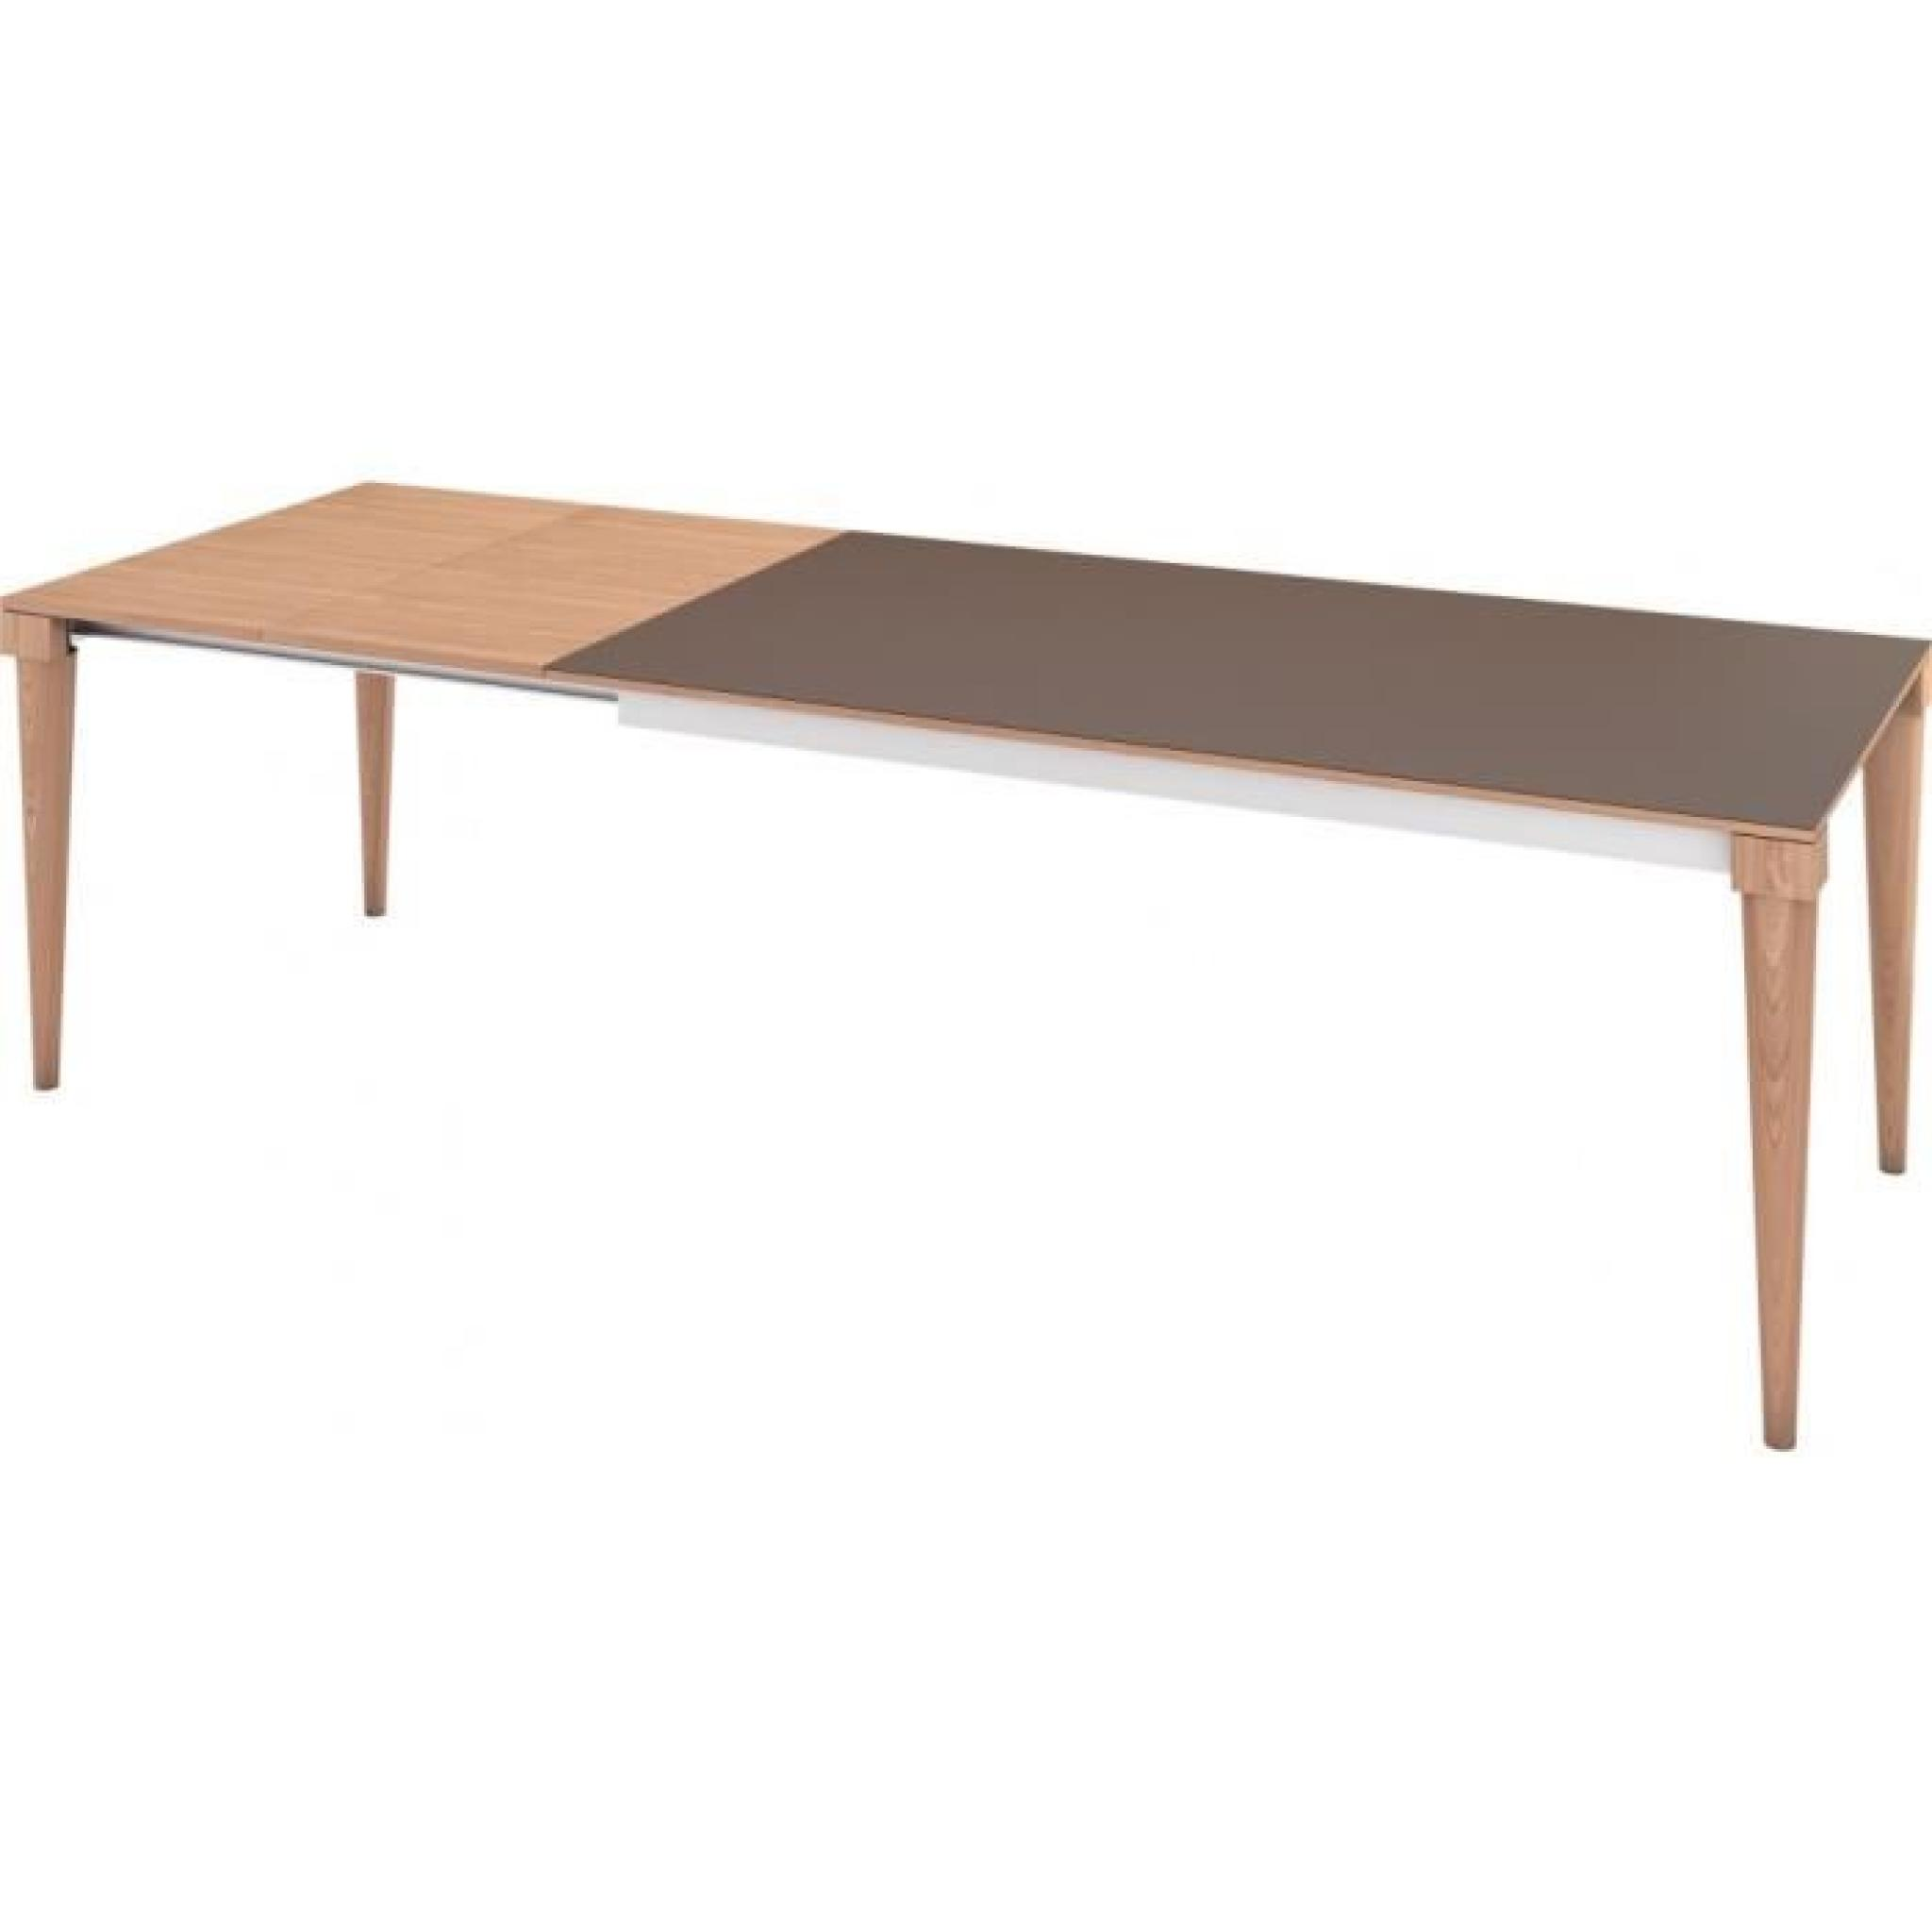 Table de repas scandinave ch ne naturel plateau c ramique for Table salle manger plateau